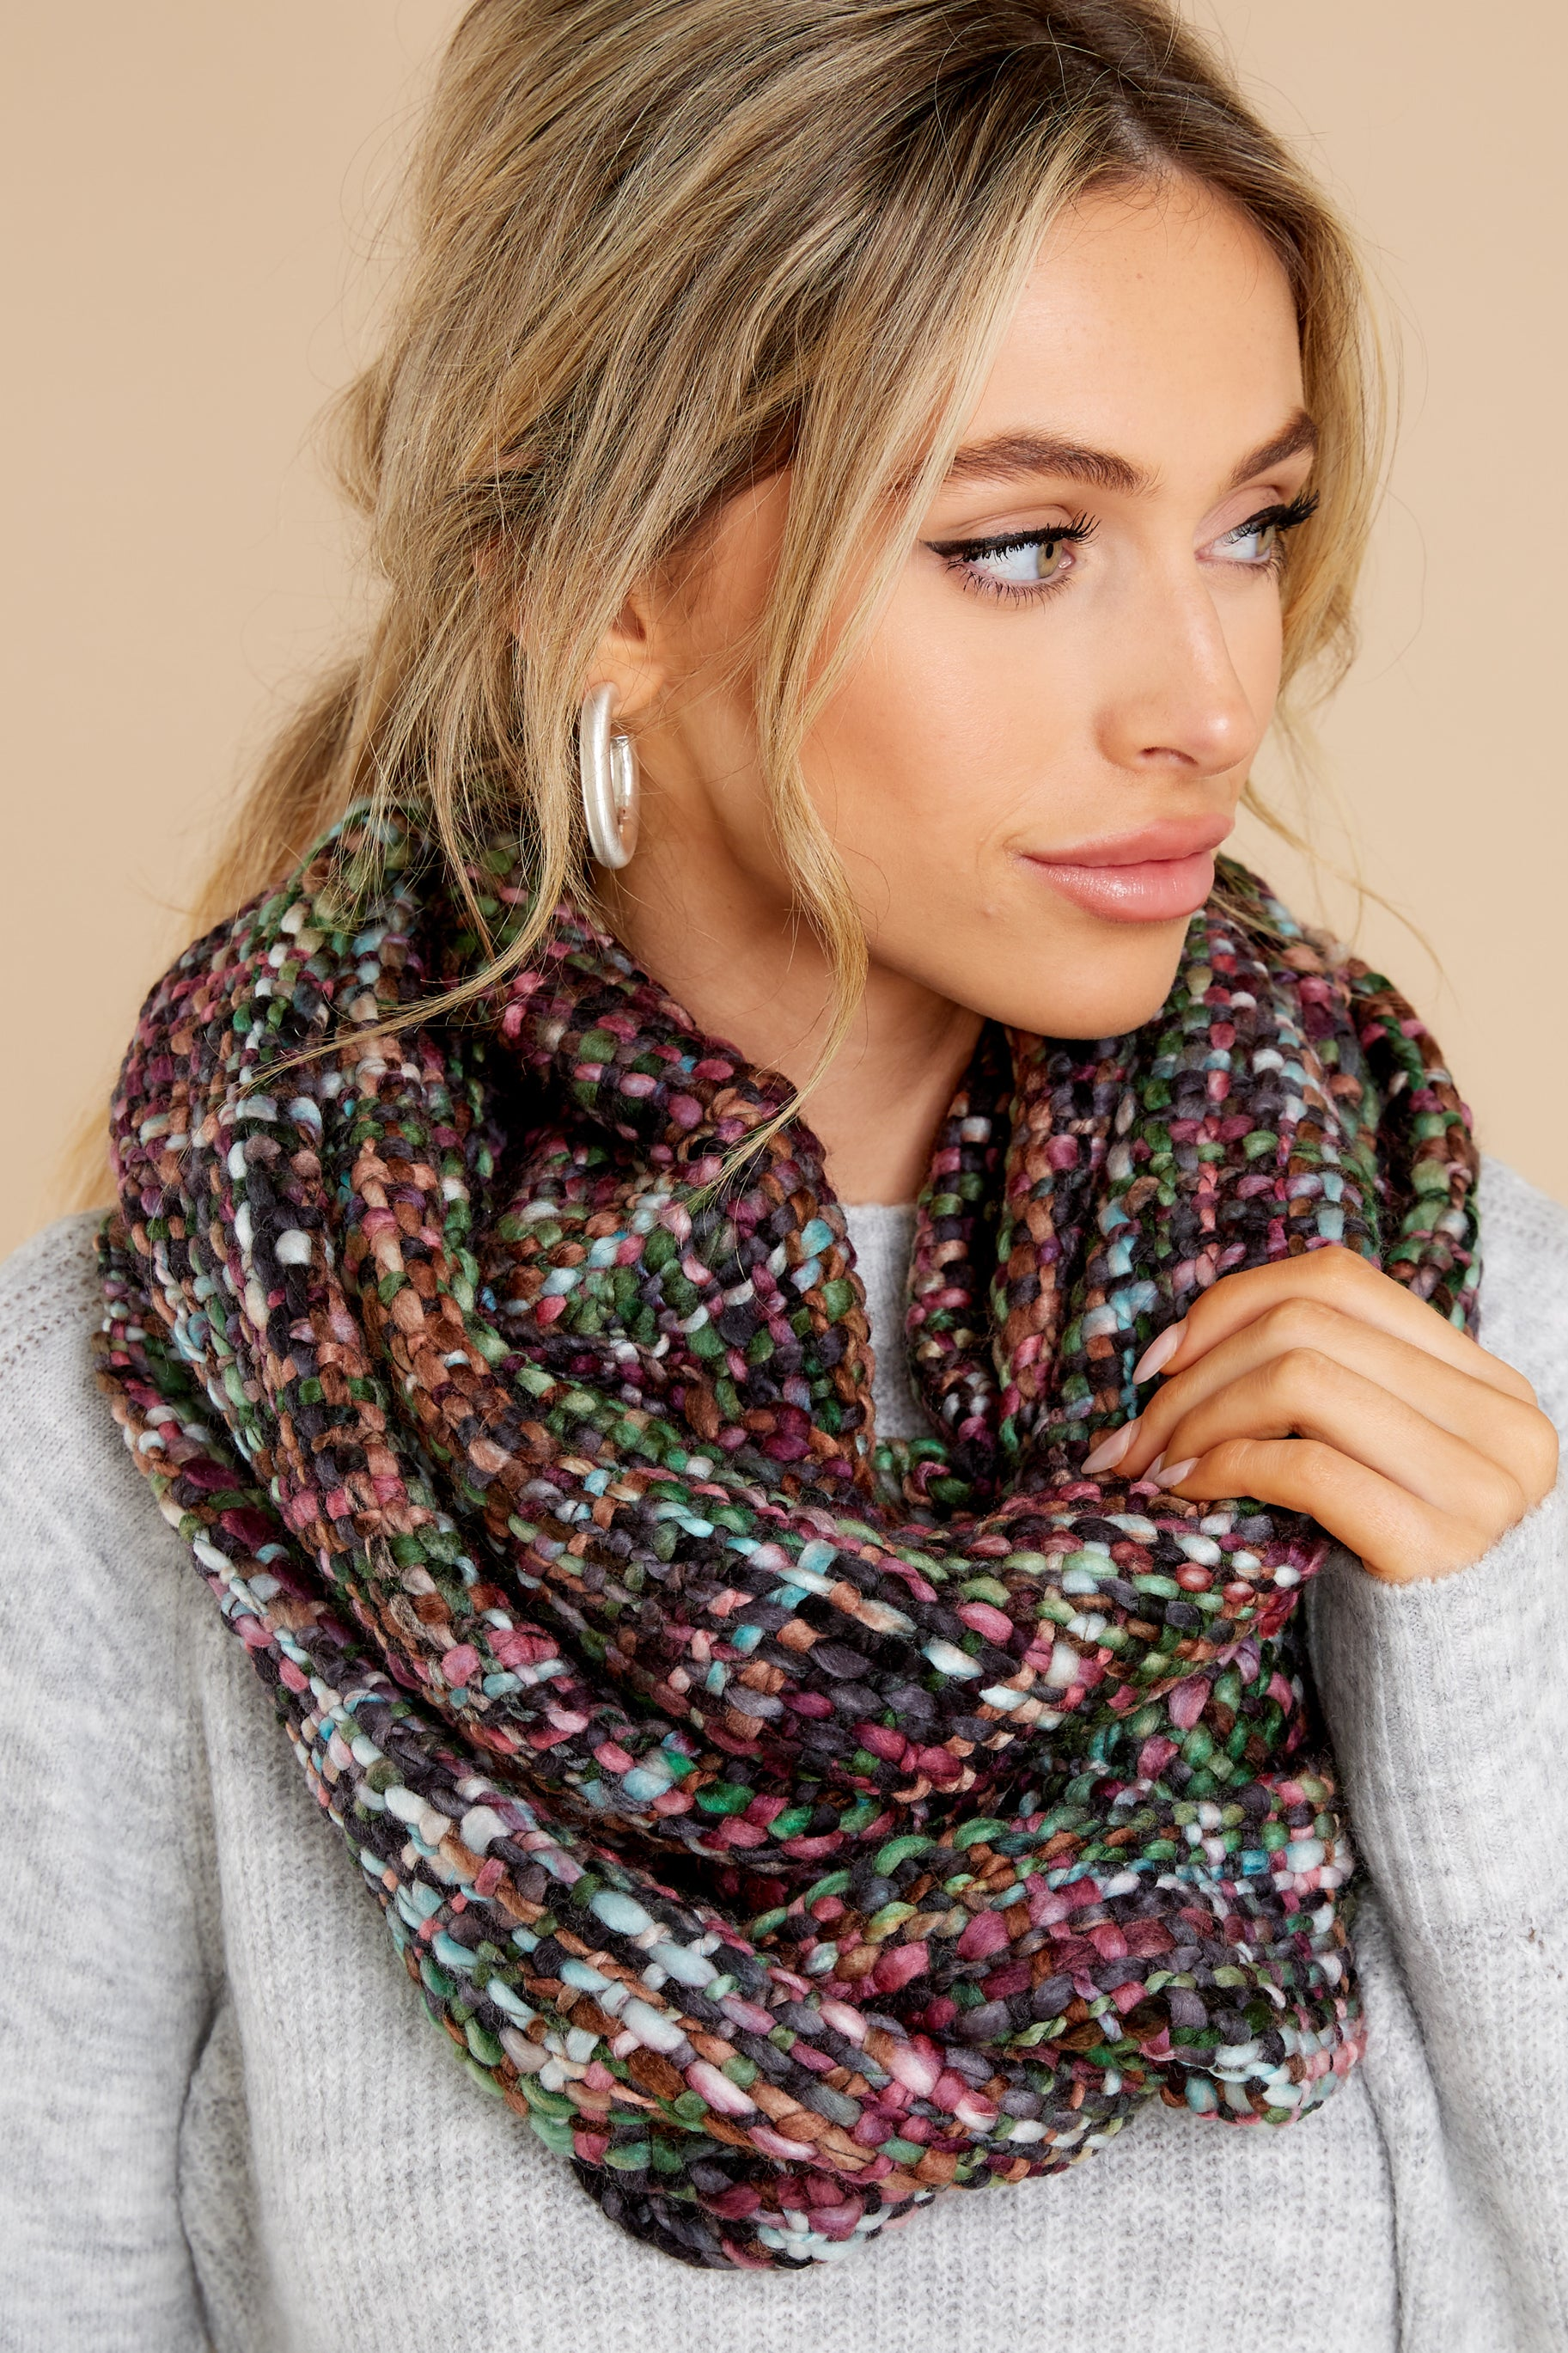 2 Warm Me Up Purple And Green Multi Knit Infinity Scarf at reddress.com